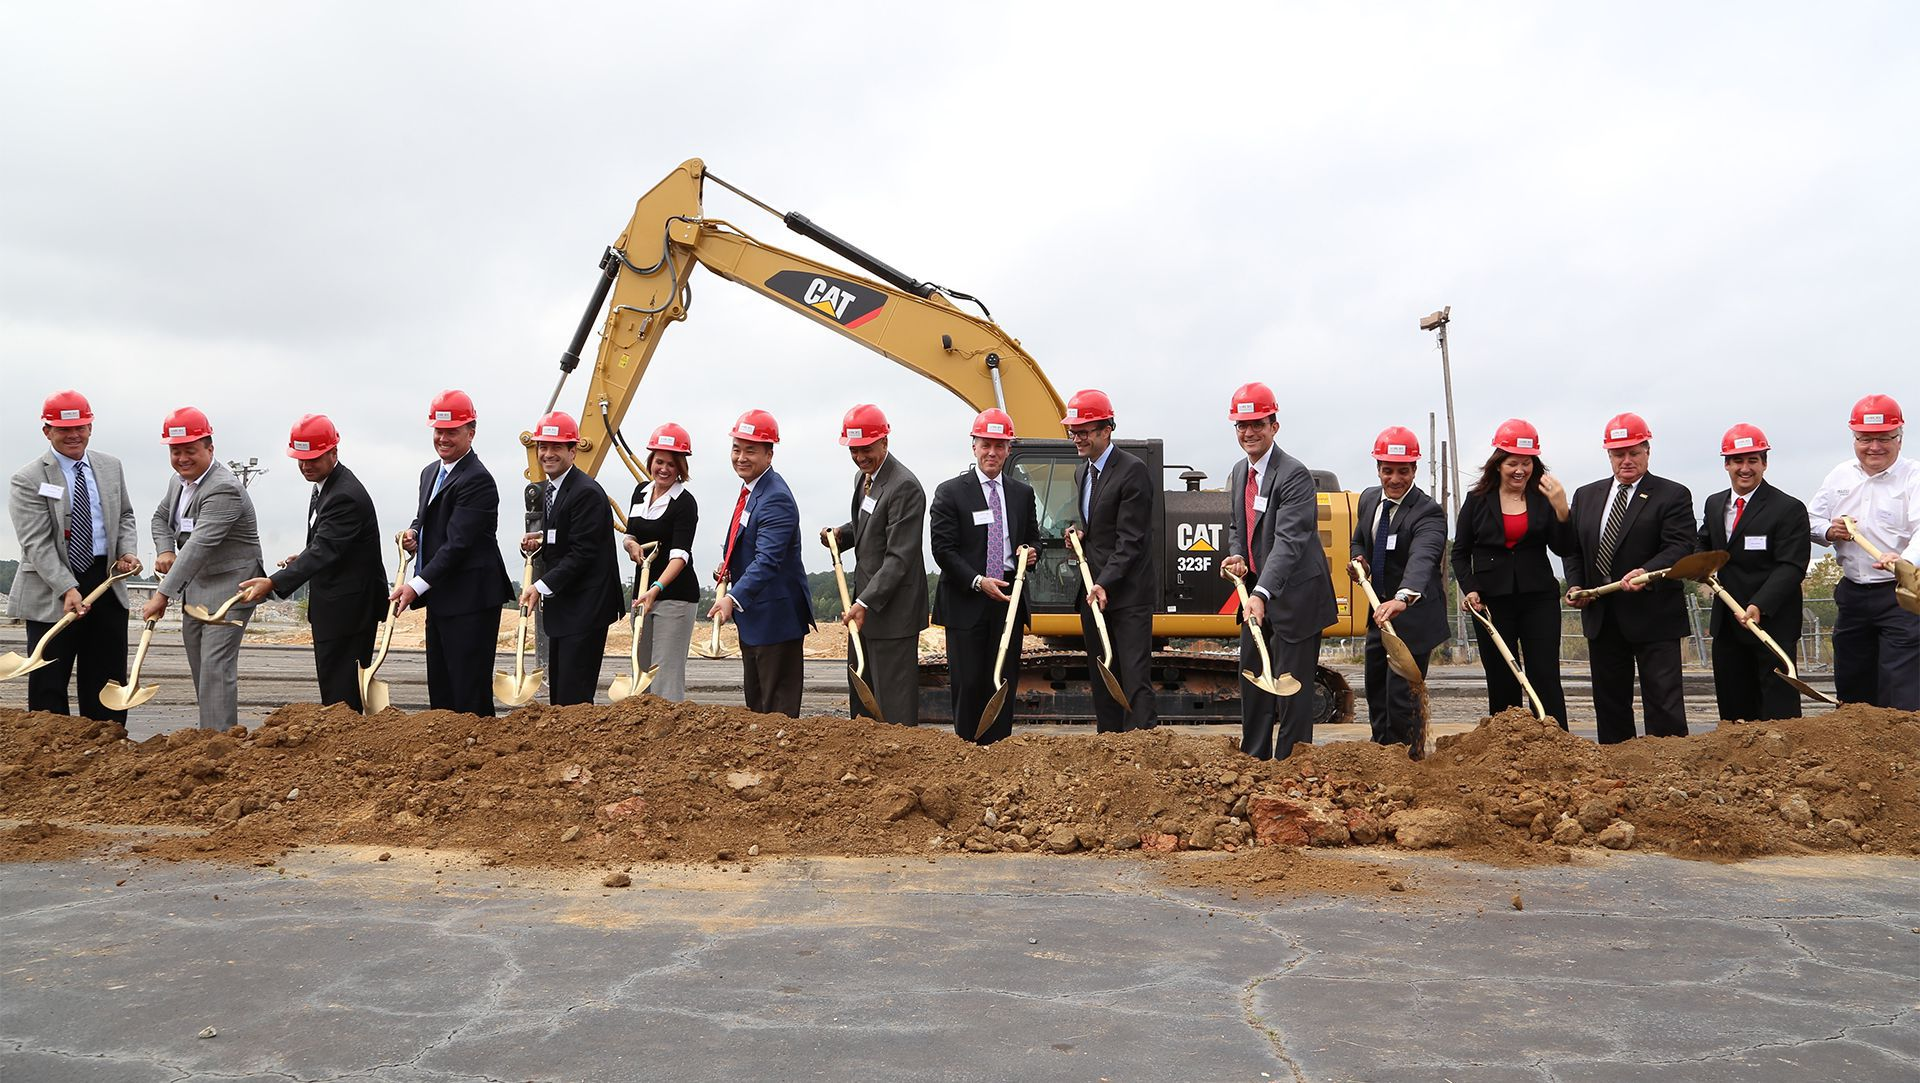 Asbury Automotive Group Expands Its Nalley Brand With New Nissan Dealership  In Atlanta